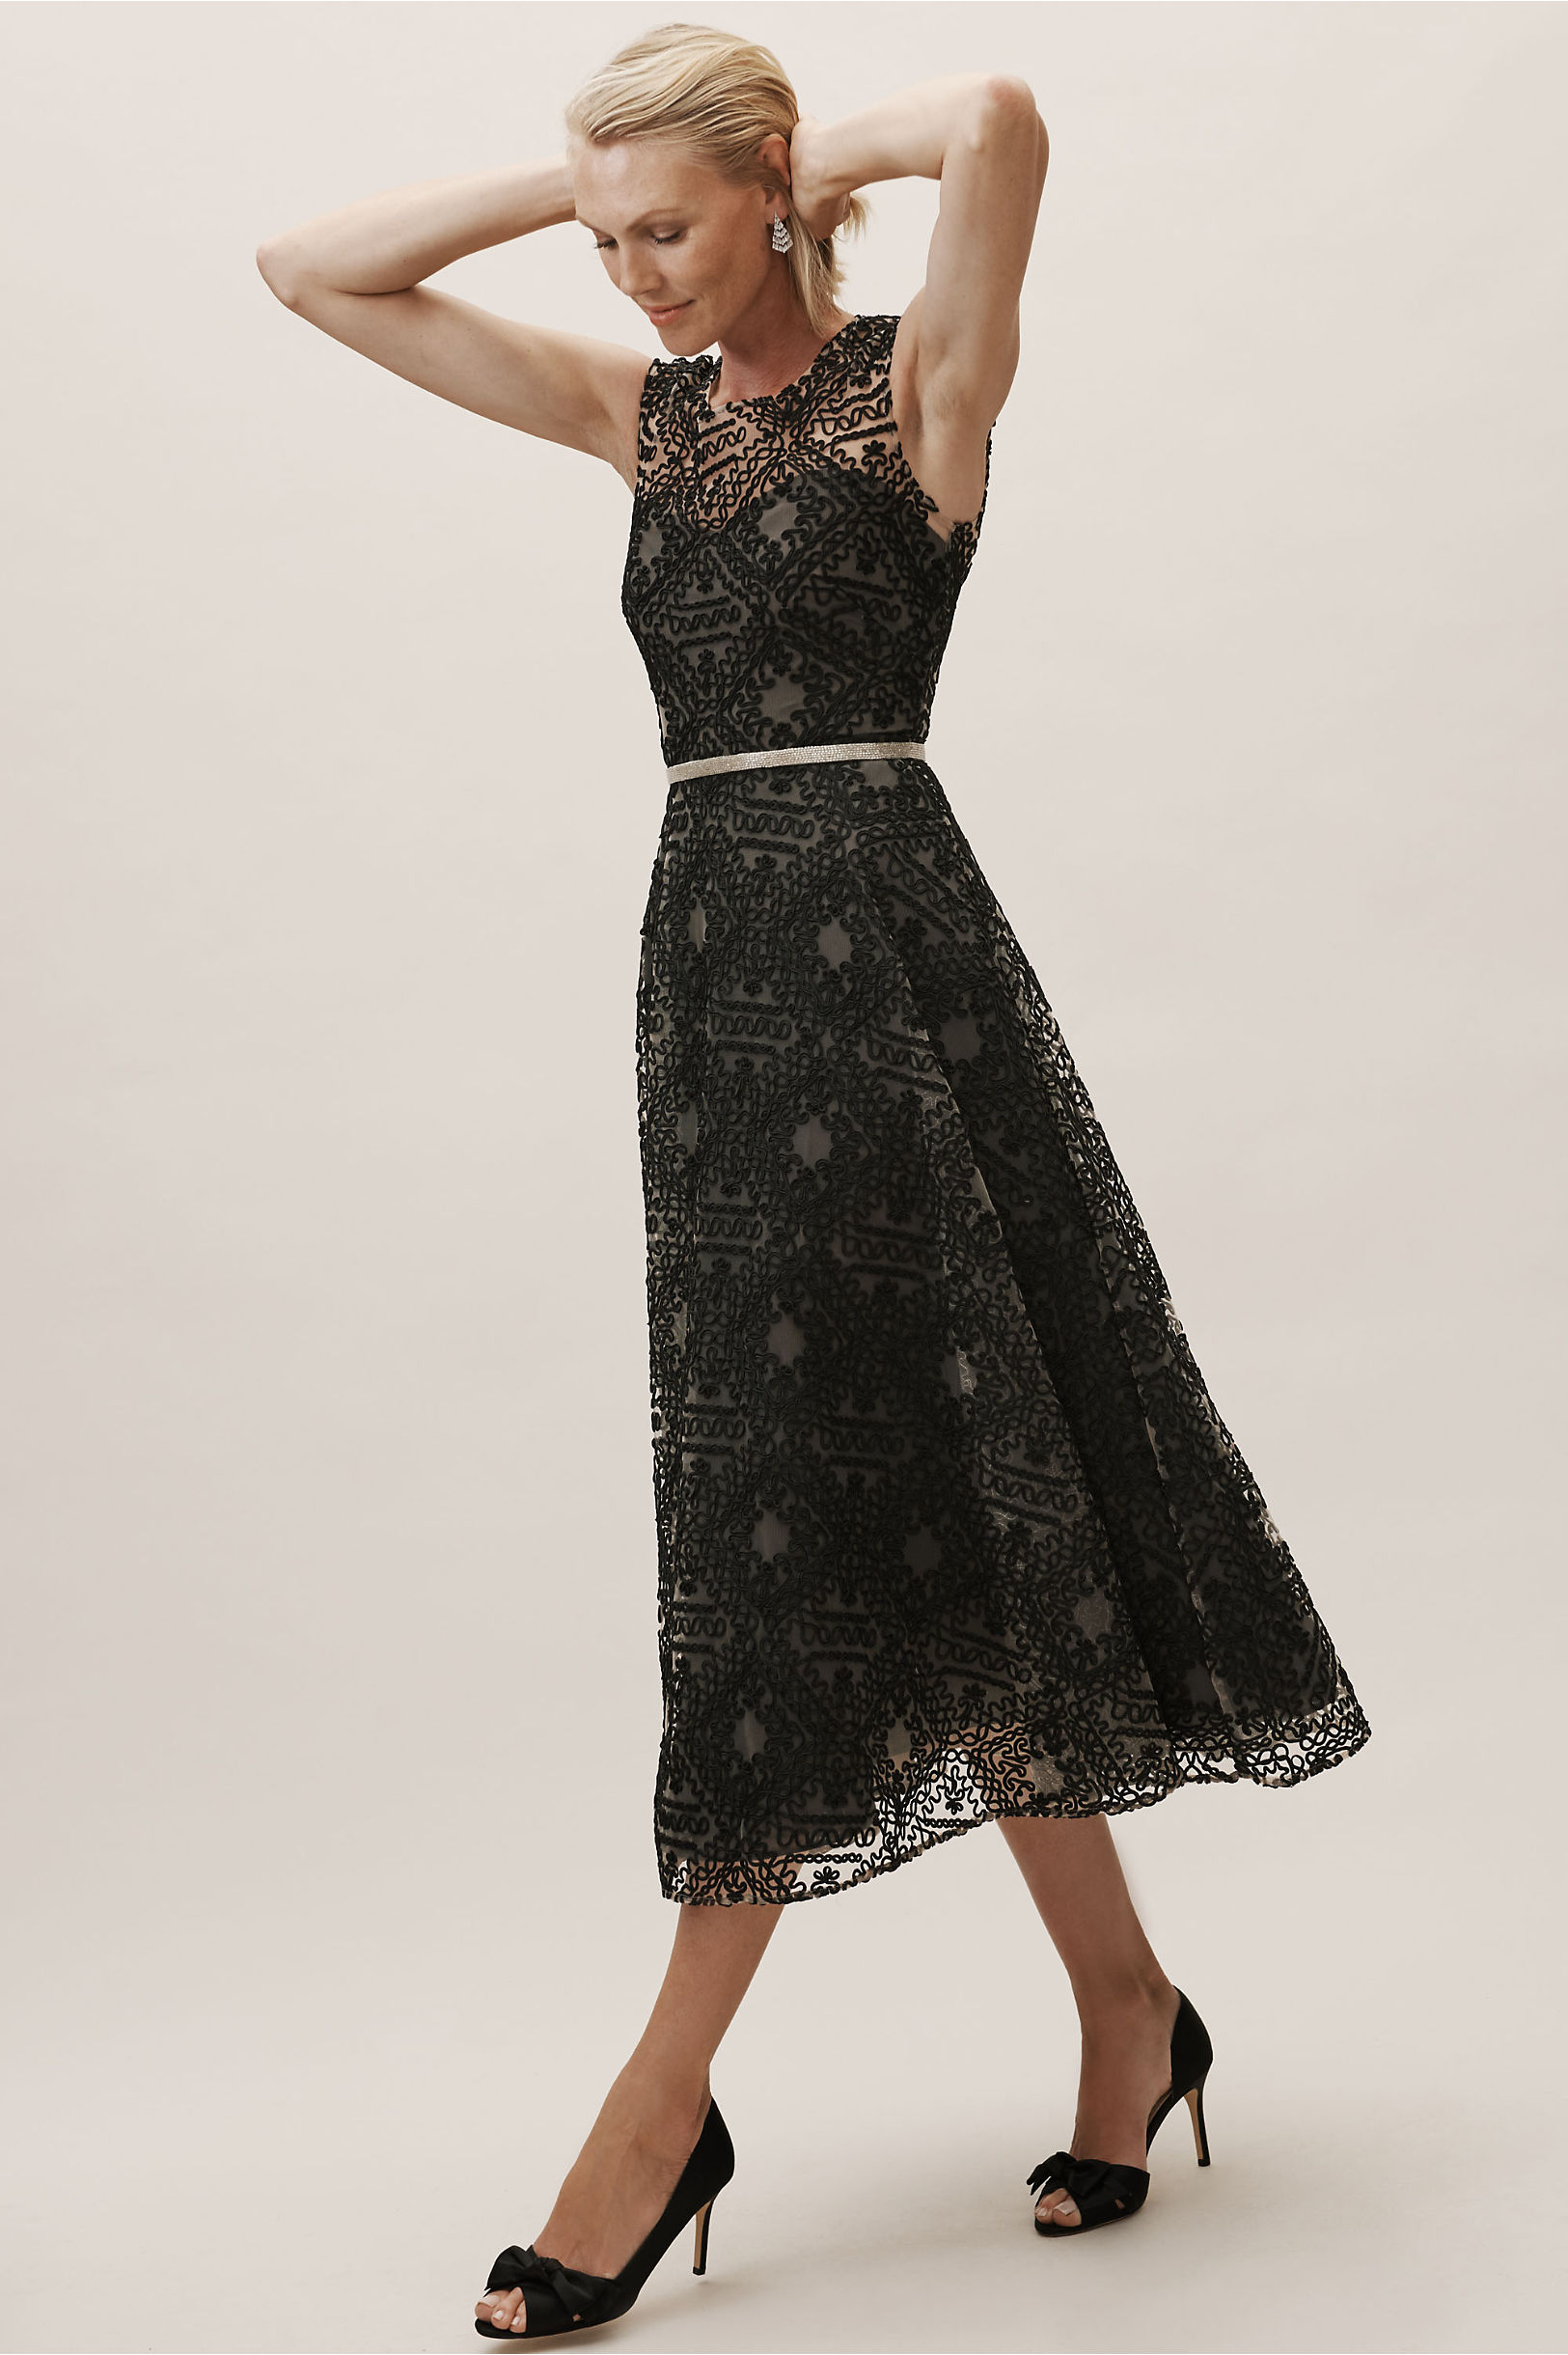 The Presley Dress in Black from BHLDN